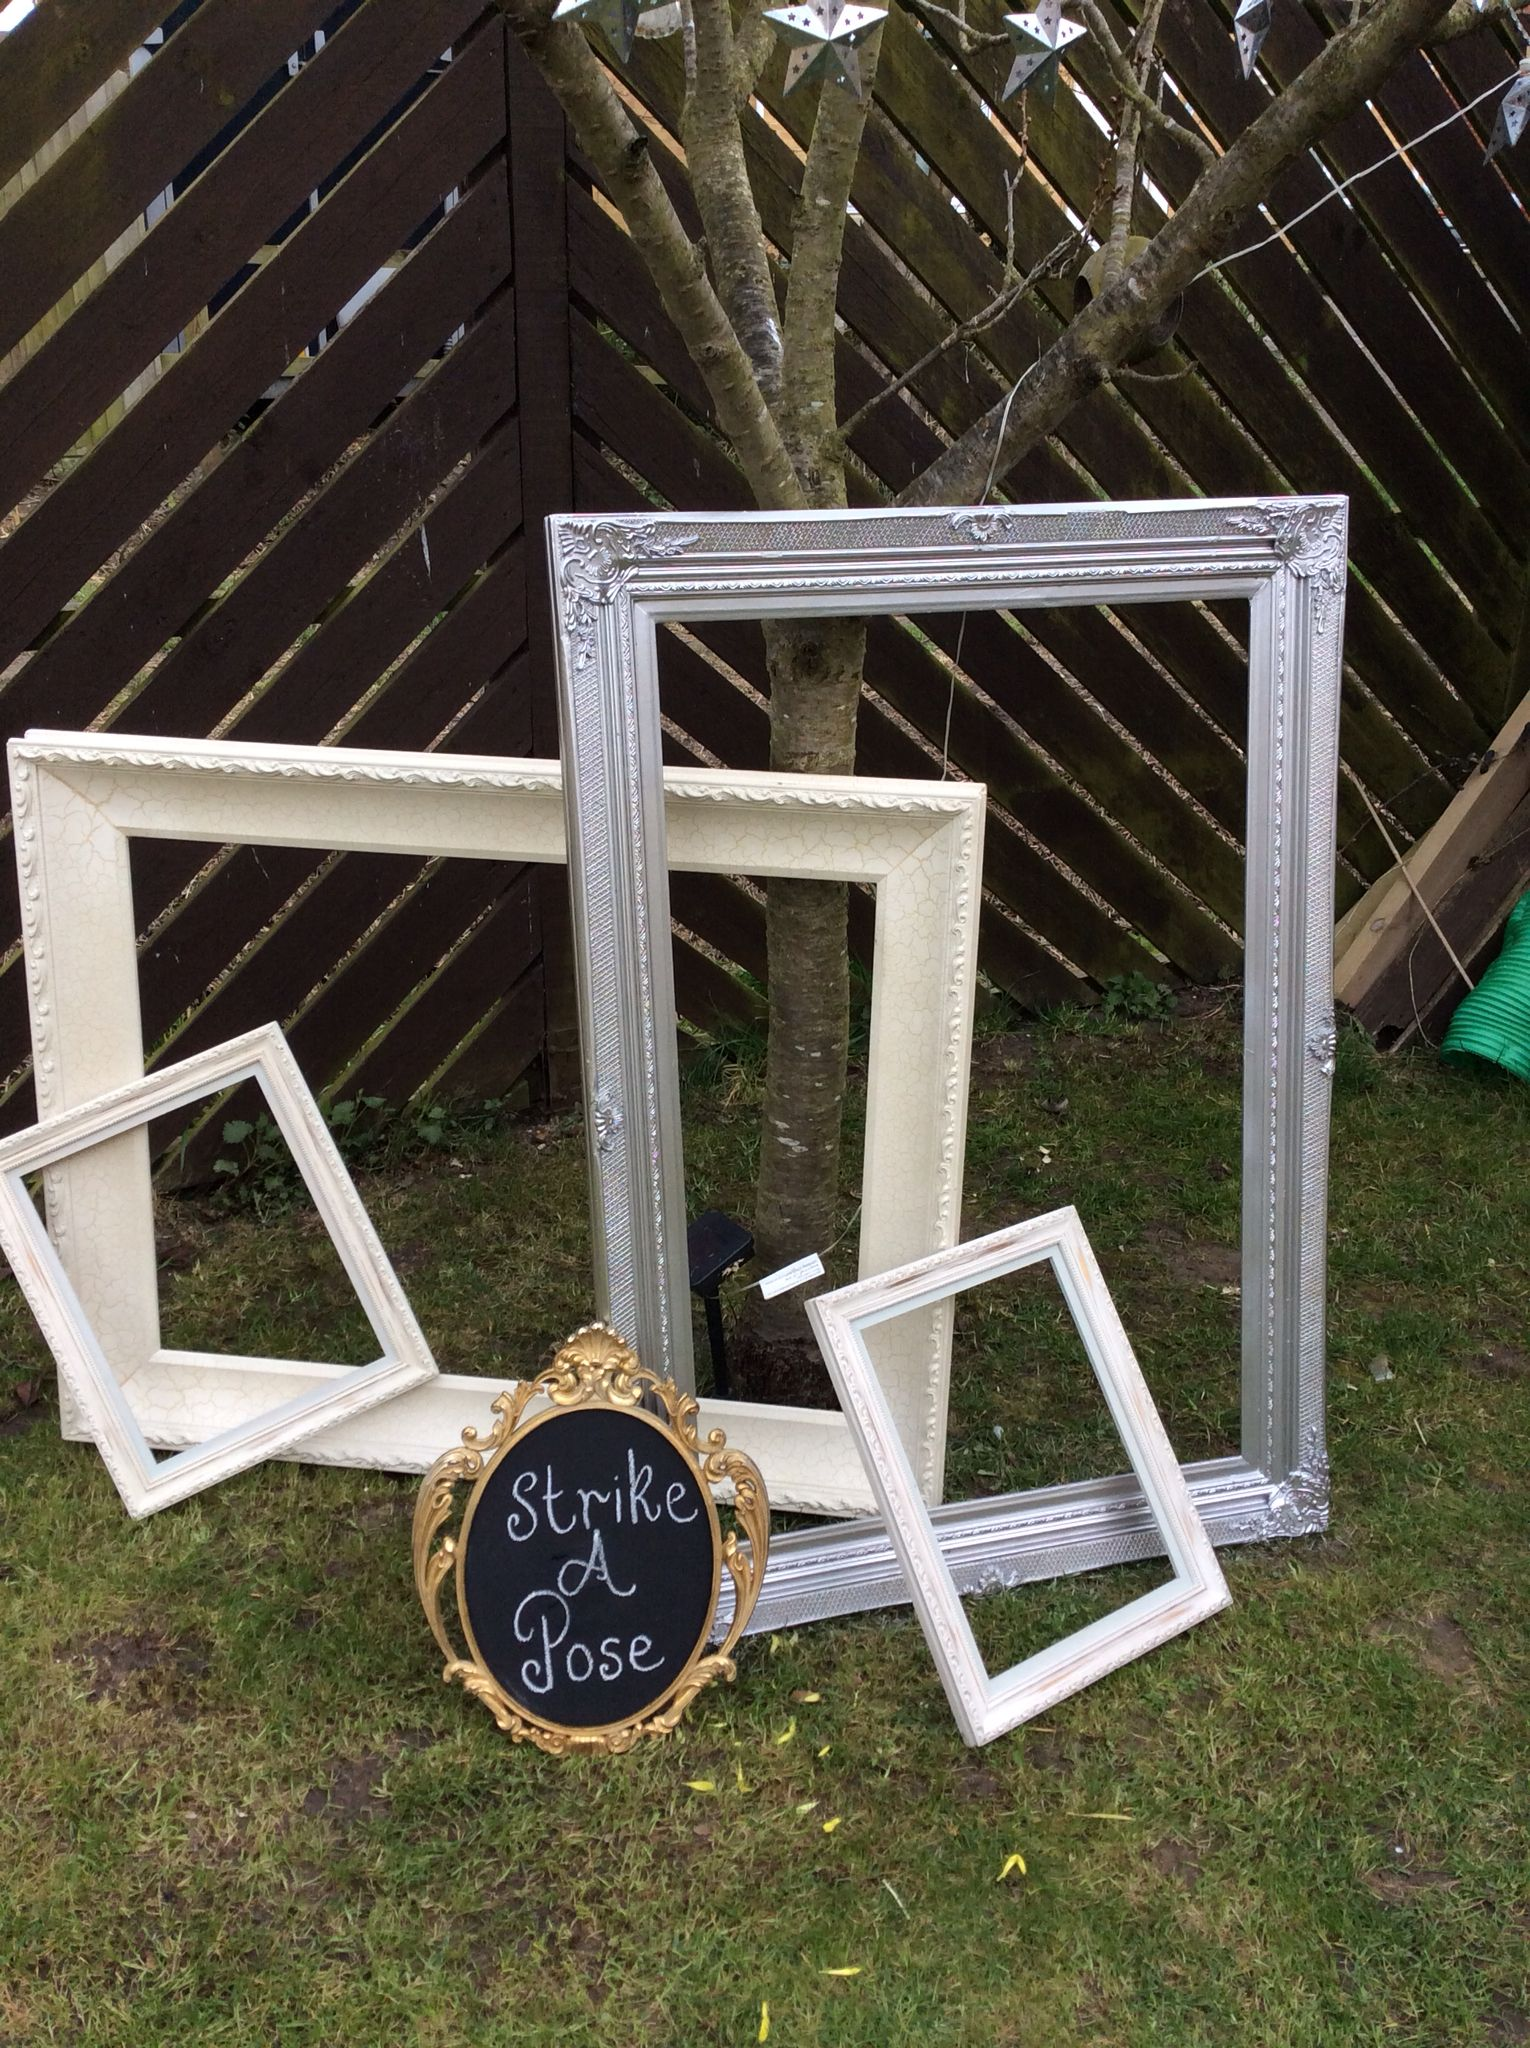 Large frame hire £10  https://www.facebook.com/pages/TLC-Candy-Cart-Hire/1567572446801237 Based in Cambridgeshire  Vintage wedding ideas decoration props inspiration unusual items